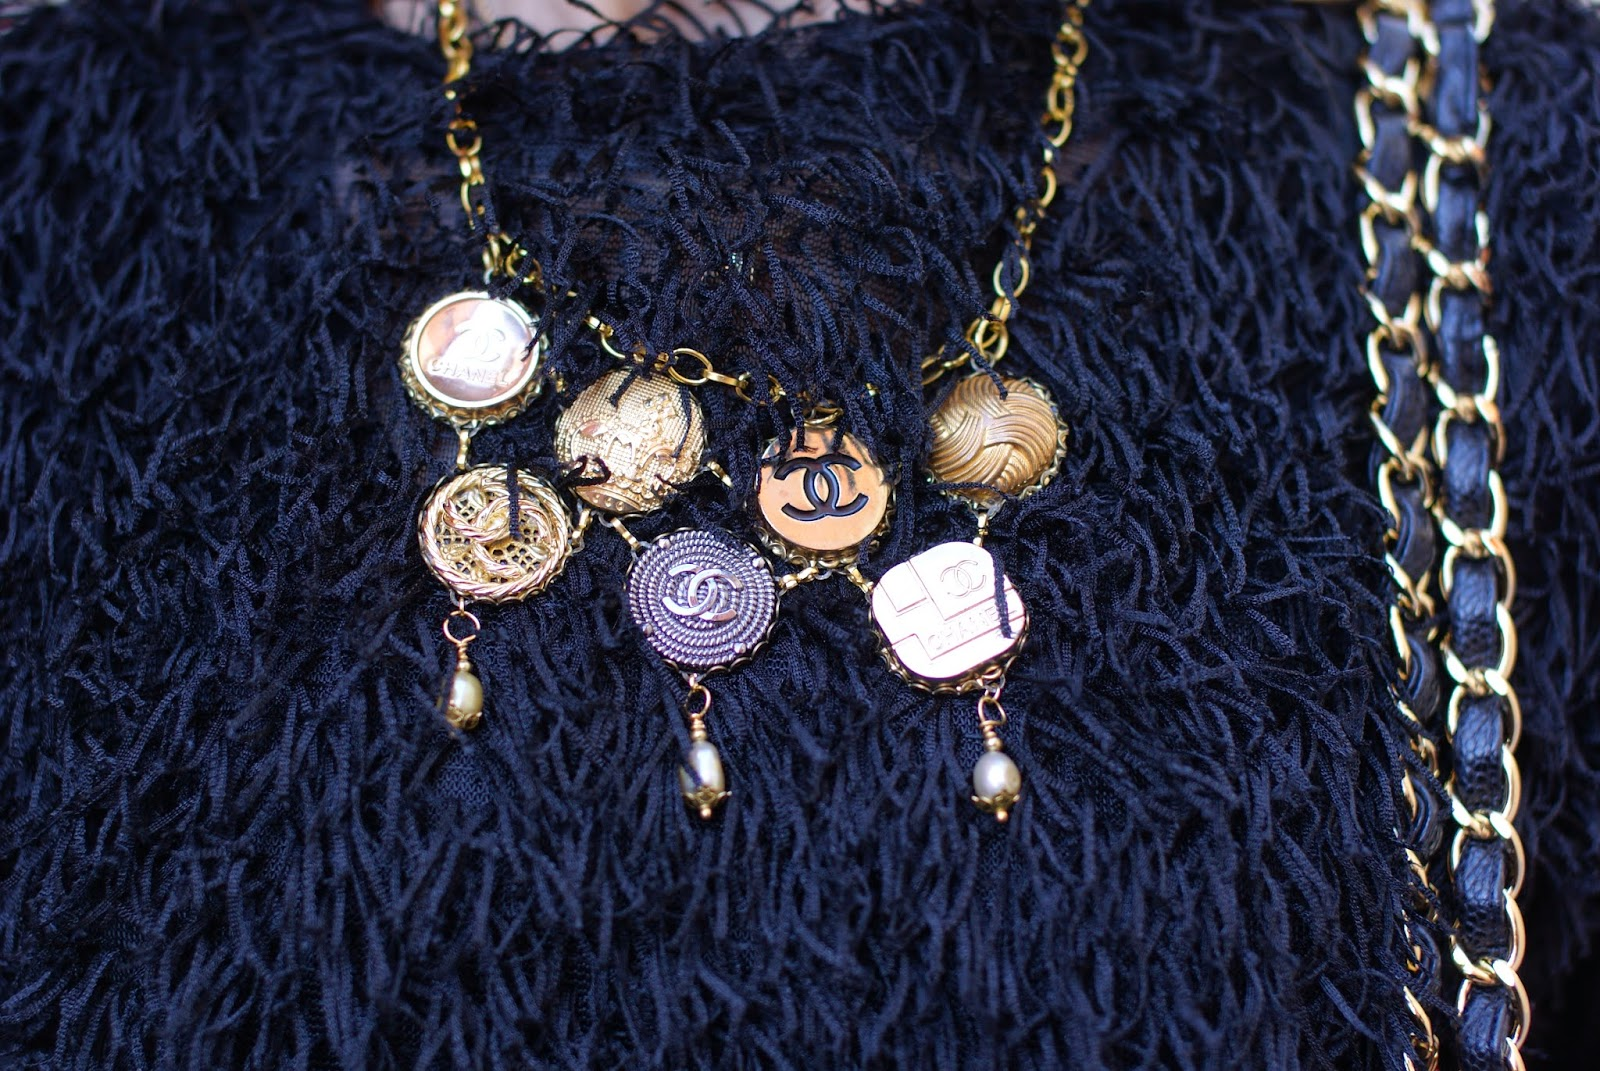 Theatrebijoux necklace, vintage chanel buttons necklace, Fashion and Cookies, fashion blogger